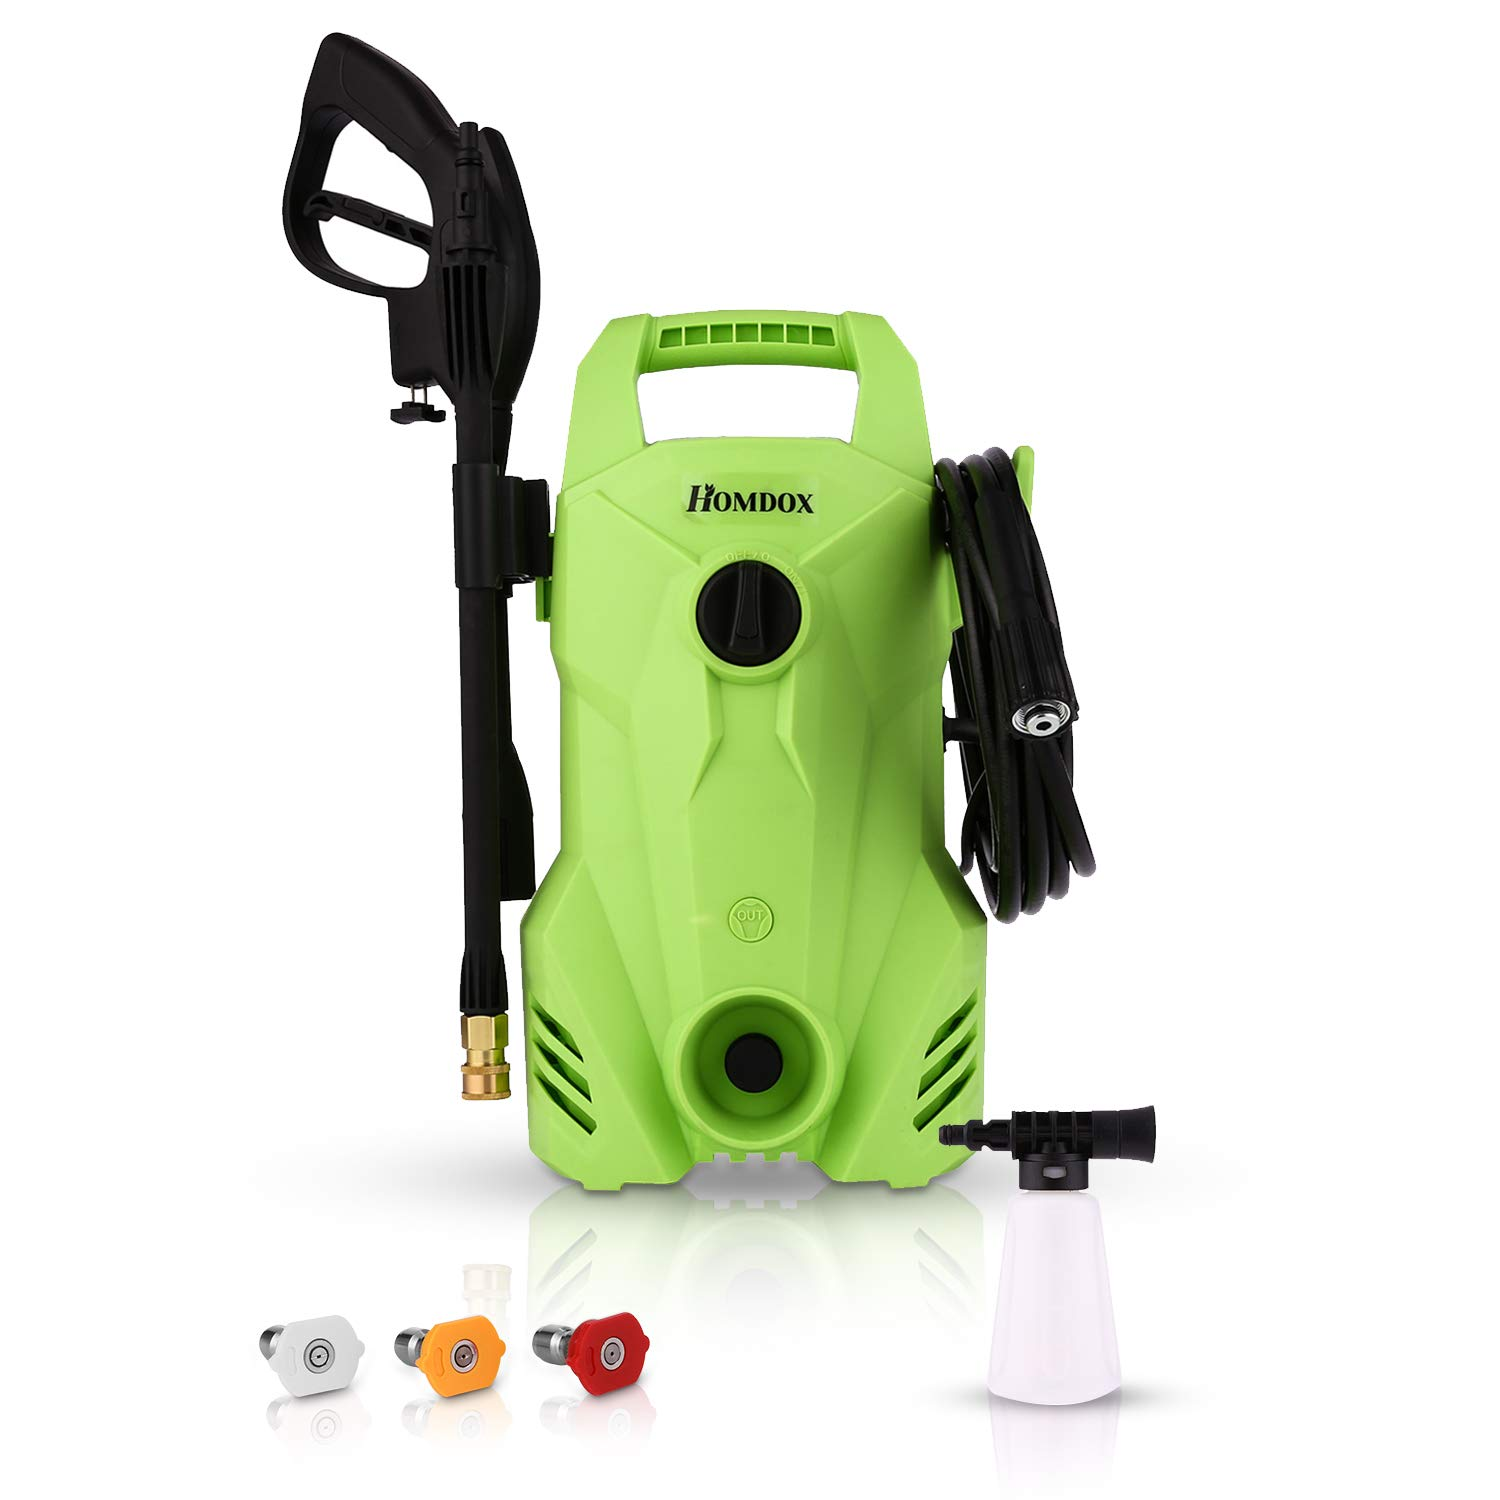 Homdox 2300 PSI 1.6 GPM Electric Power Pressure Washer Compact Professional Washer Cleaner Machine, 1400W Portable Electric Power Washer with External Detergent Dispenser,3 Nozzles